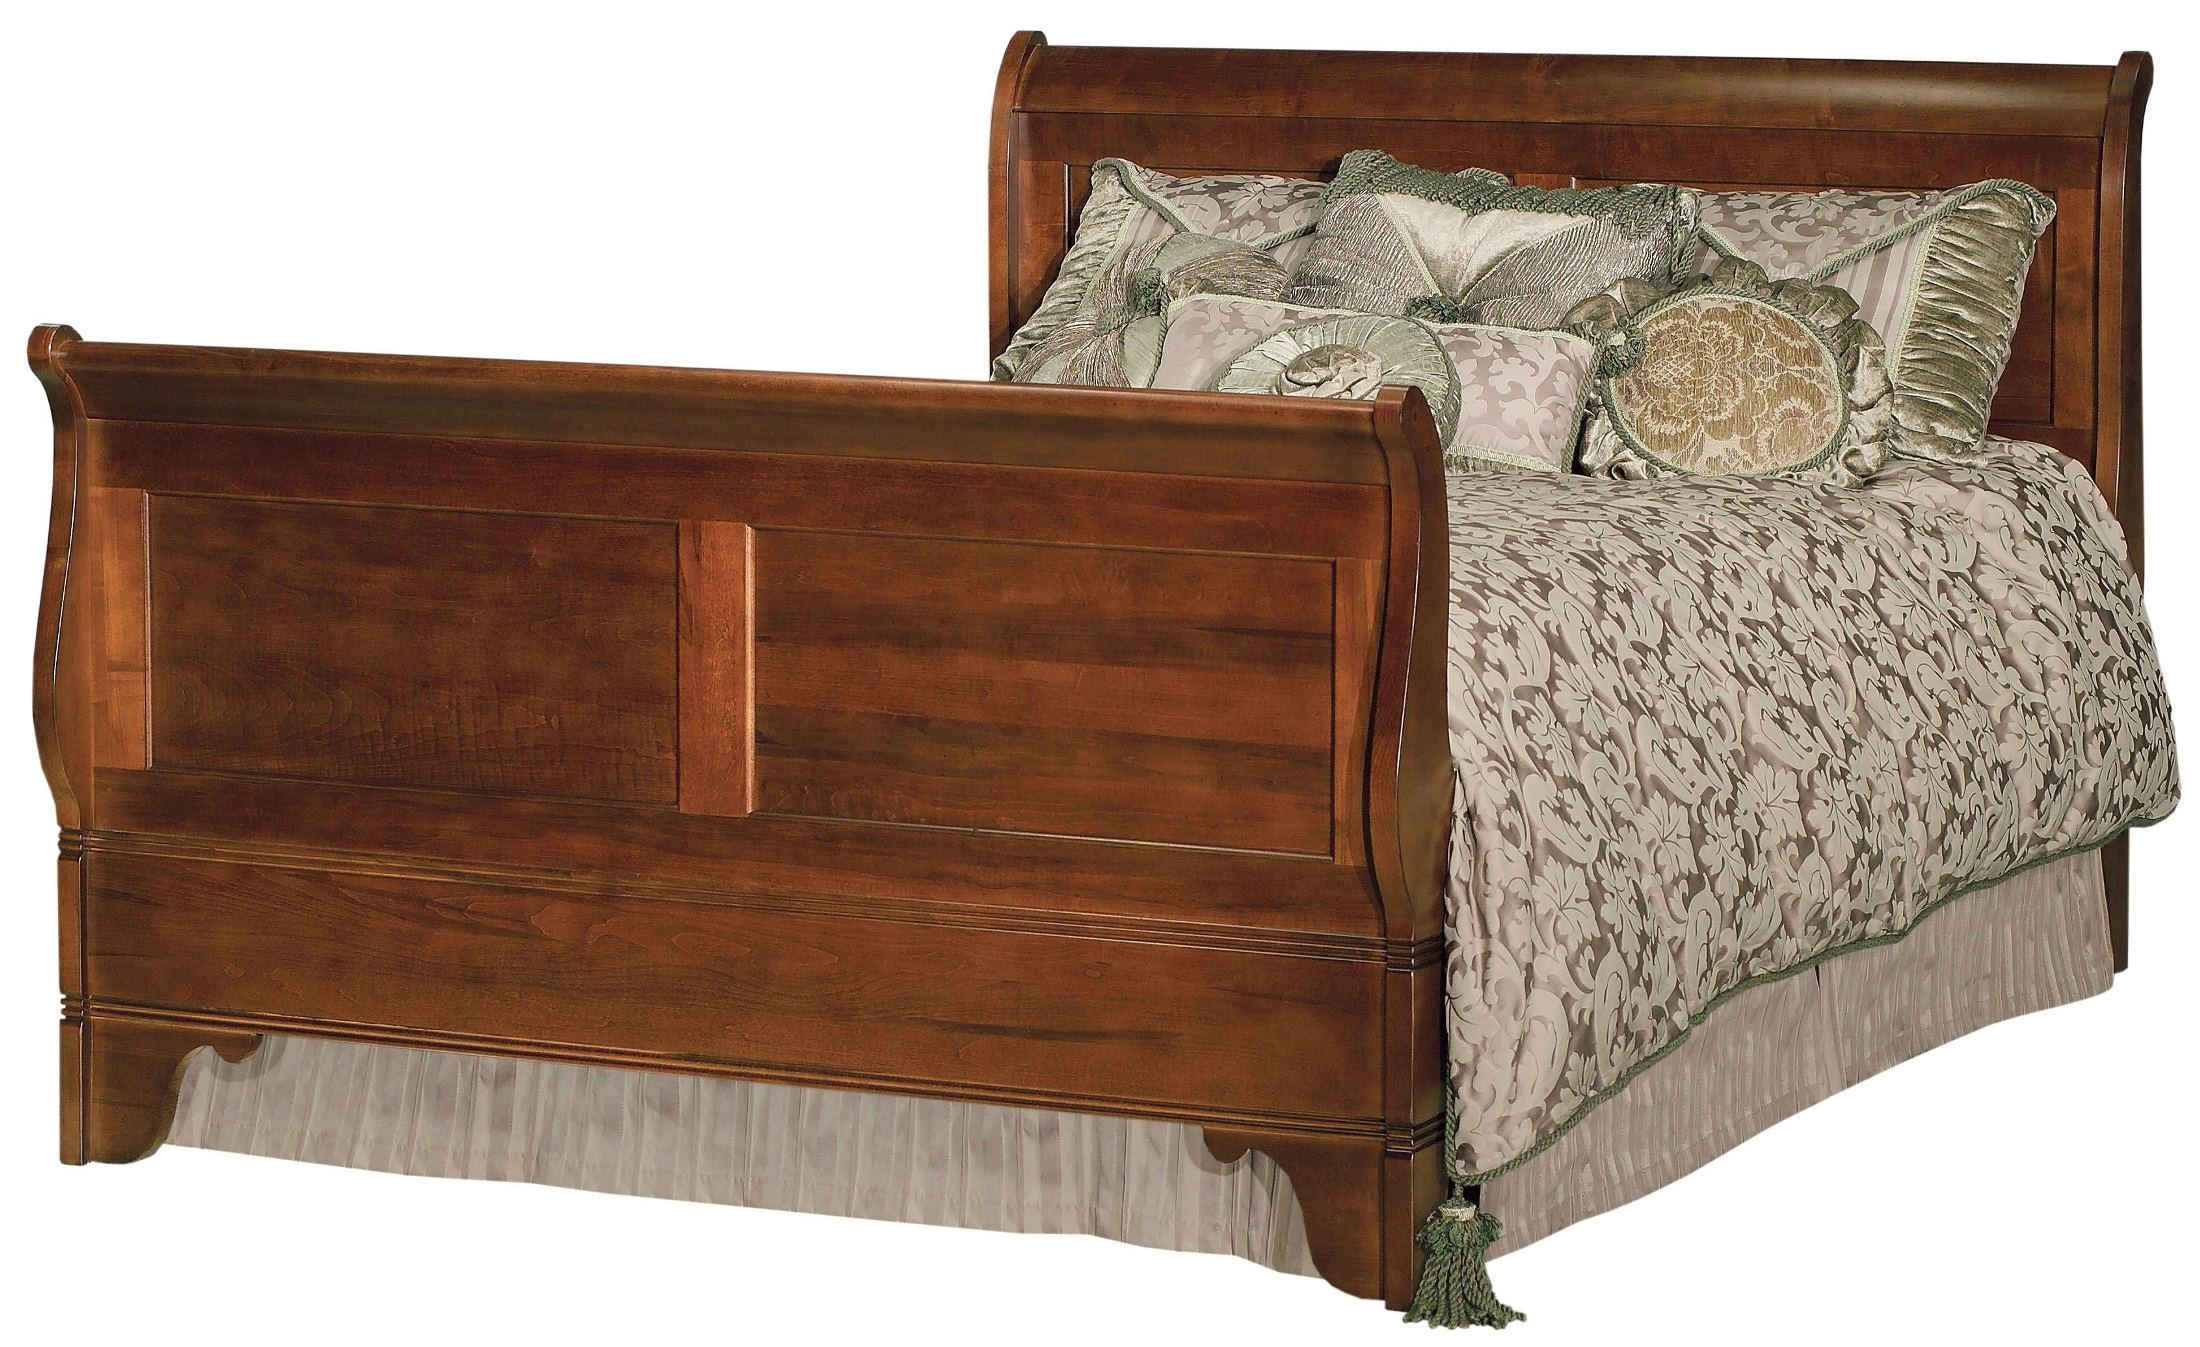 Chateau royale queen sleigh bed from kincaid 53 150p for Chateau beds